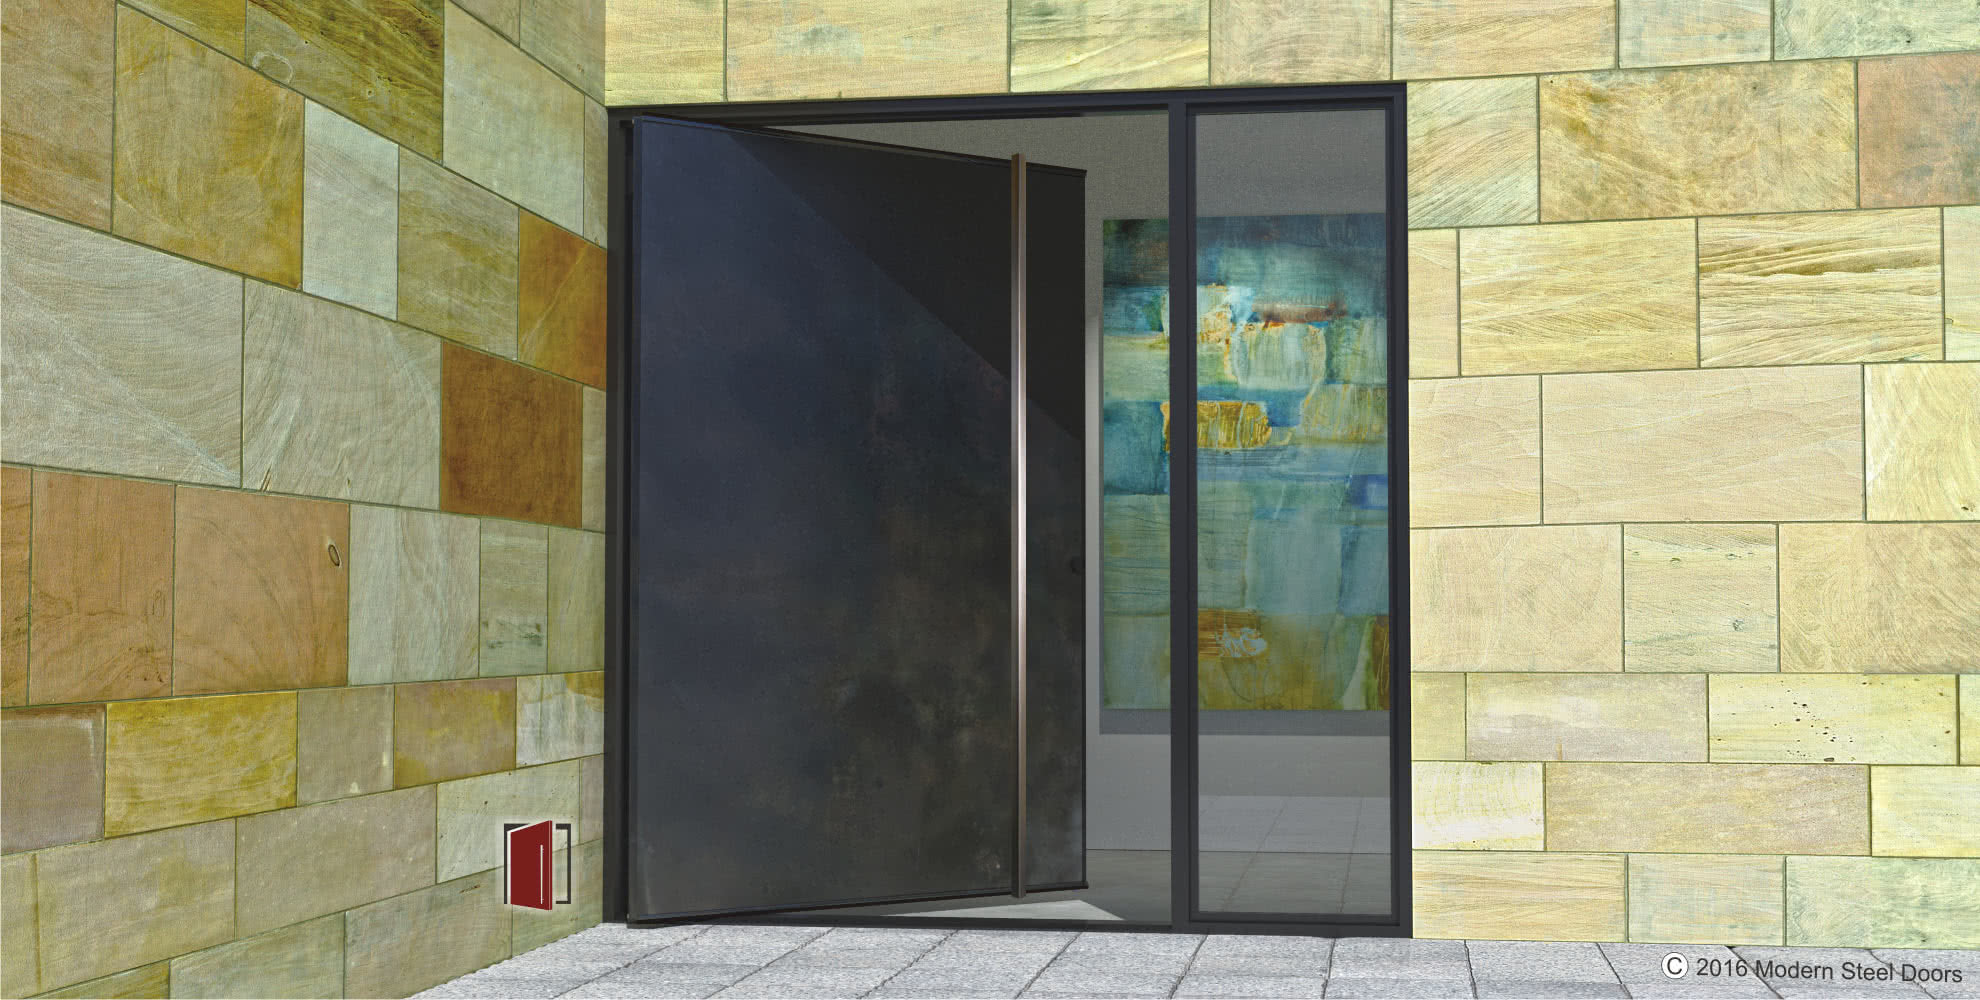 Modern glass front doors for homes - Modern Steel Doors Home Doors About Contact 1 800 406 1958